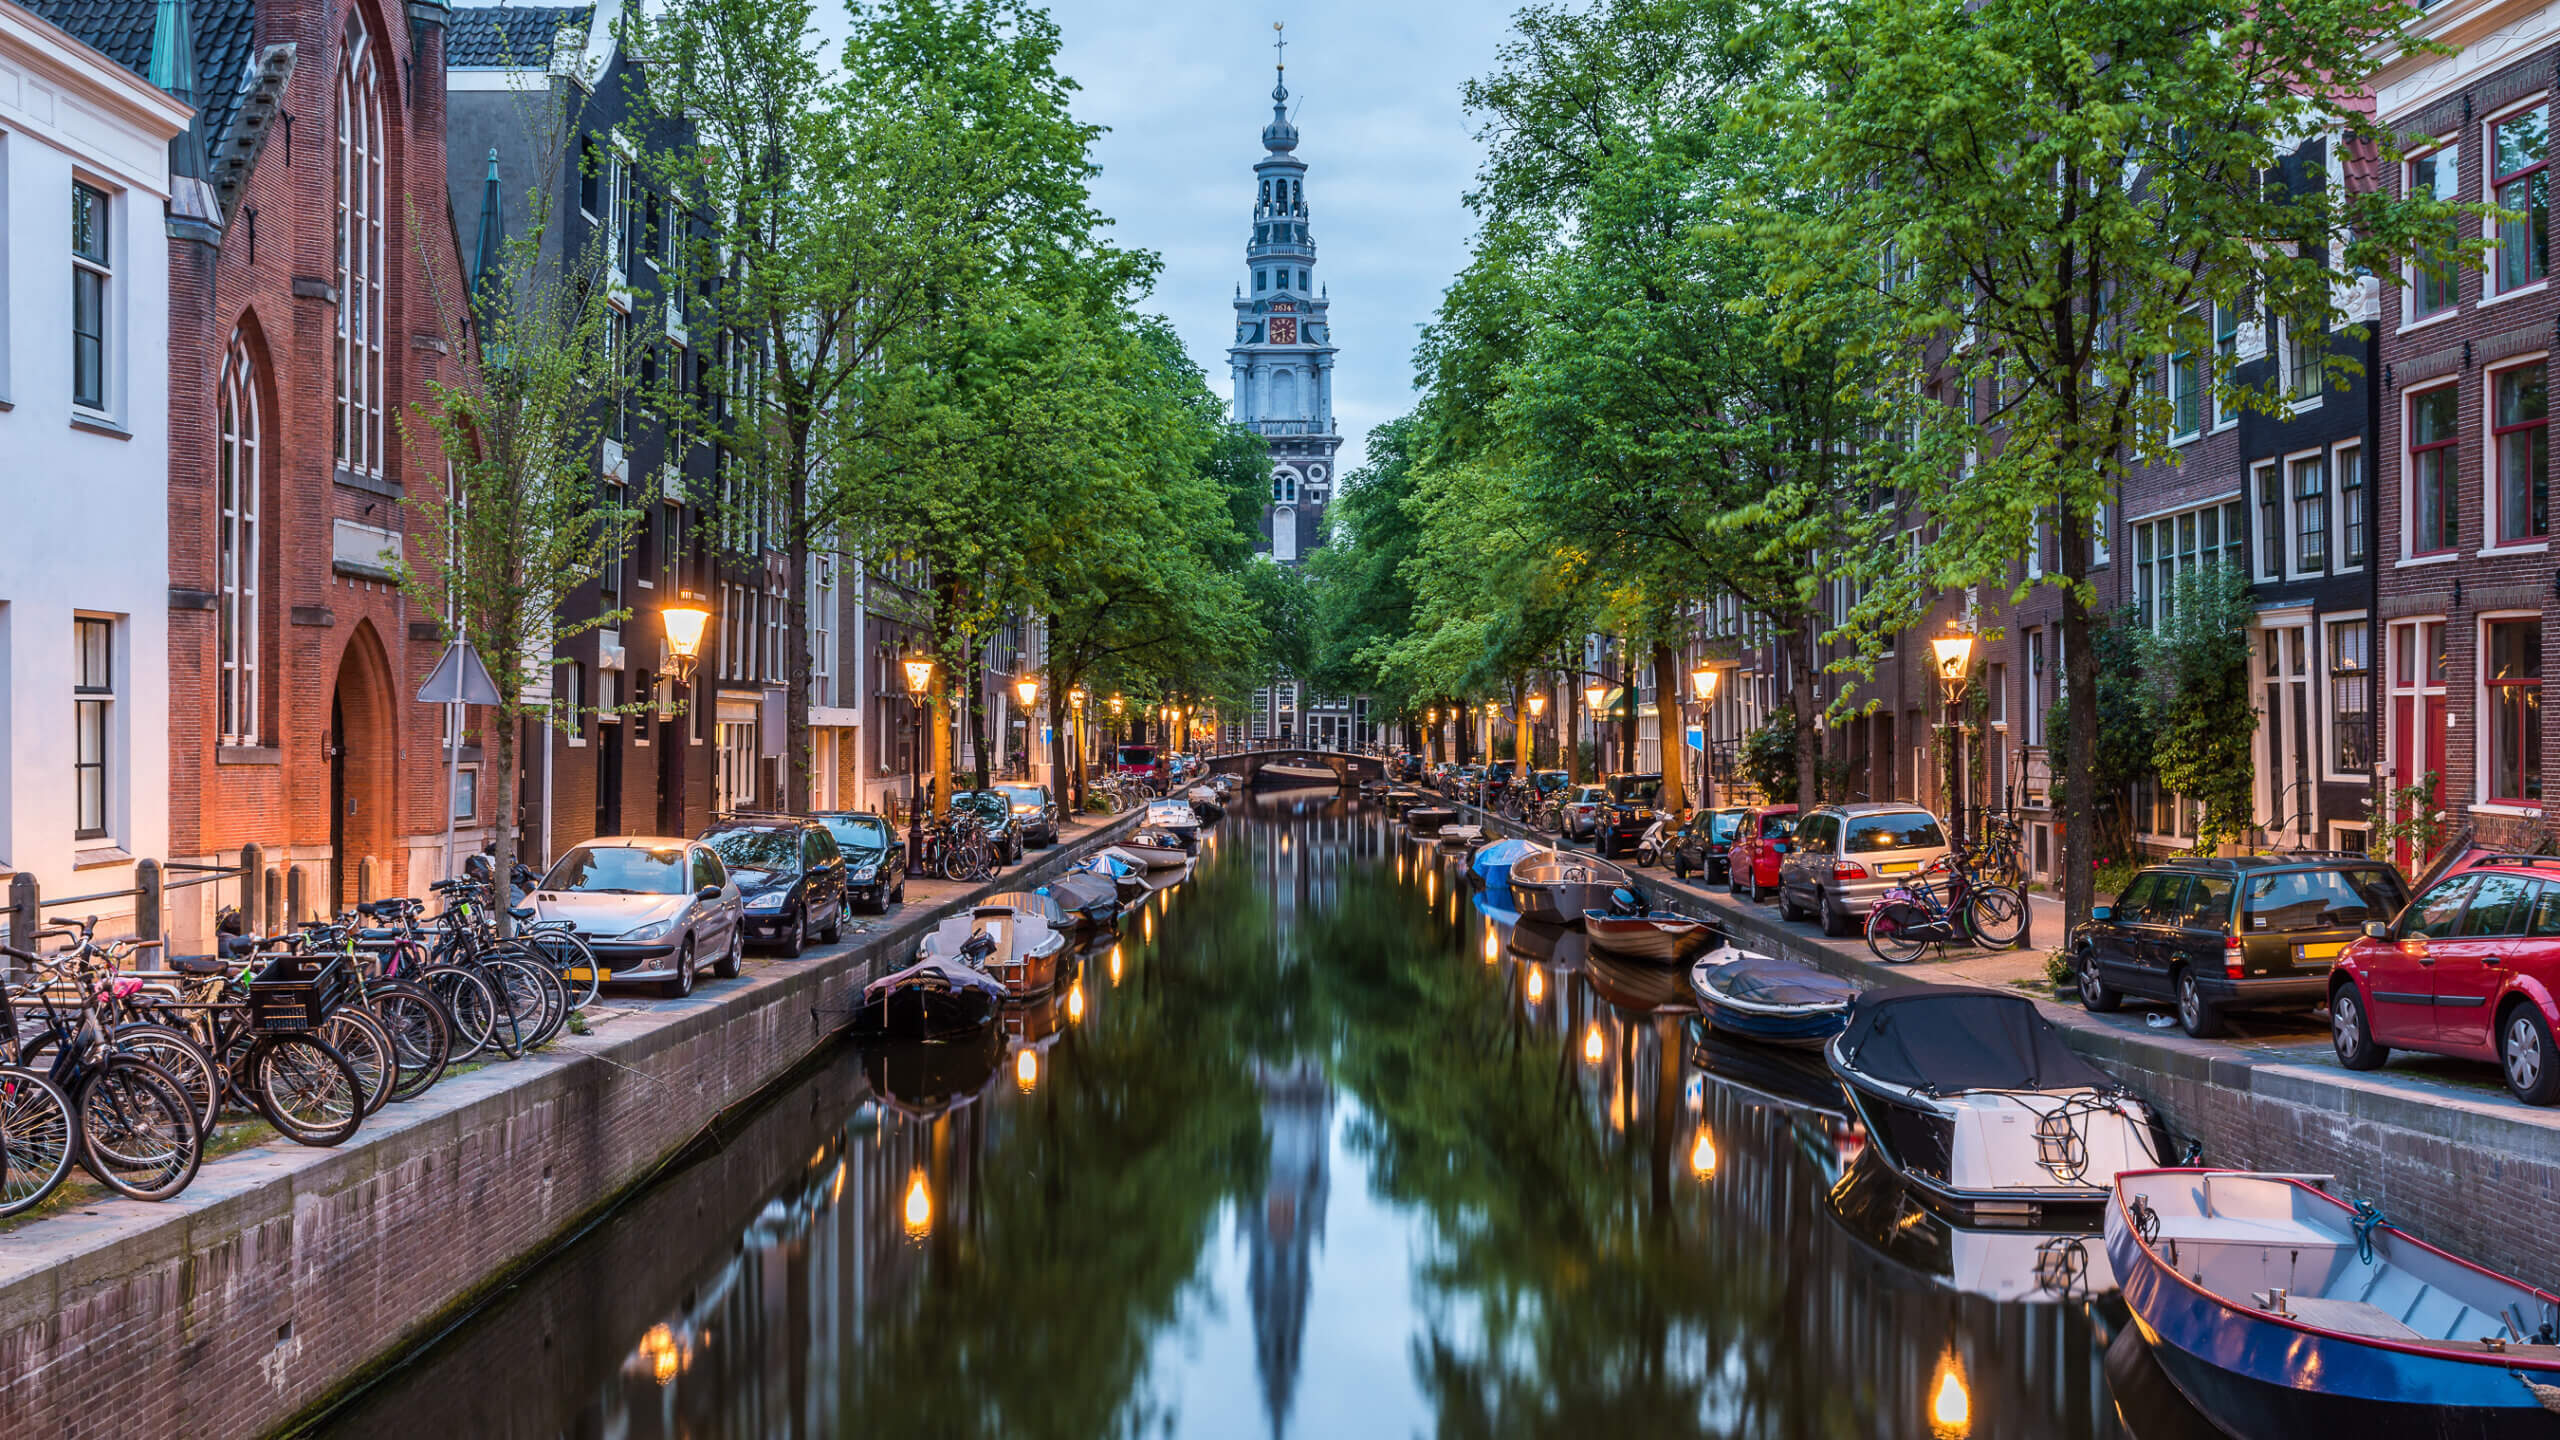 Wanderlust-Inducing Pictures of Beautiful Amsterdam